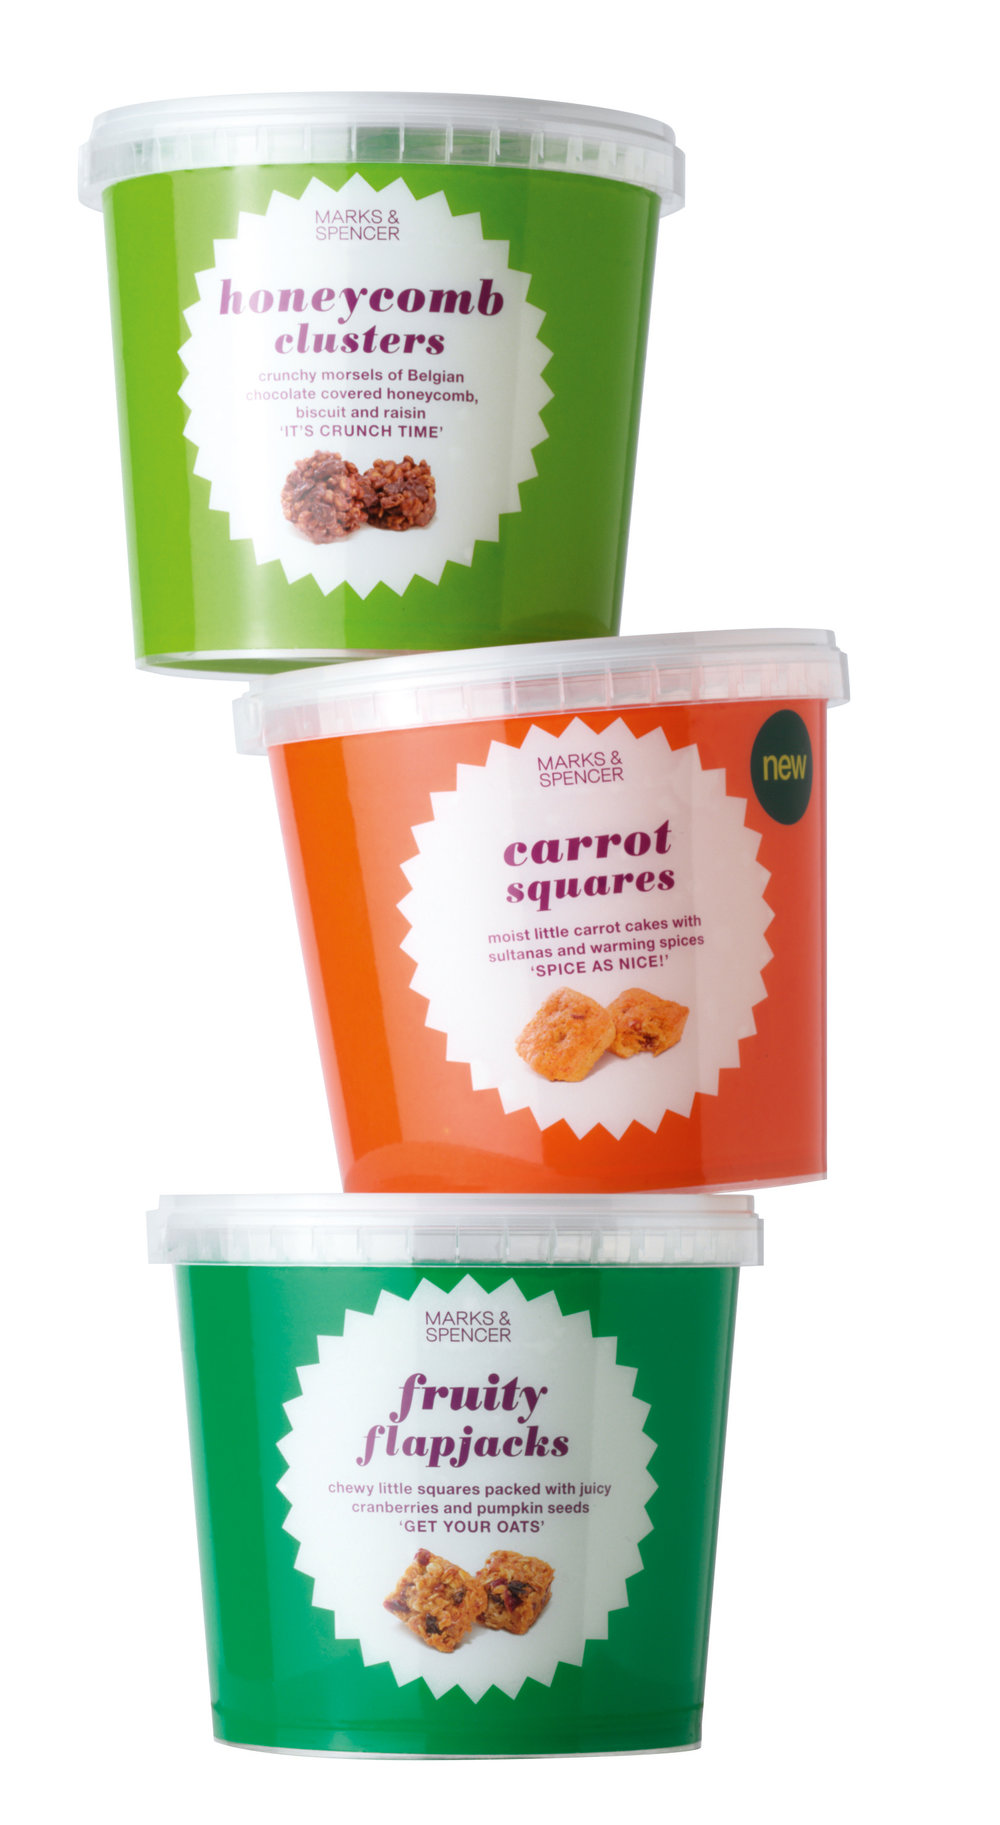 Packaging copy for M&S bakery treats